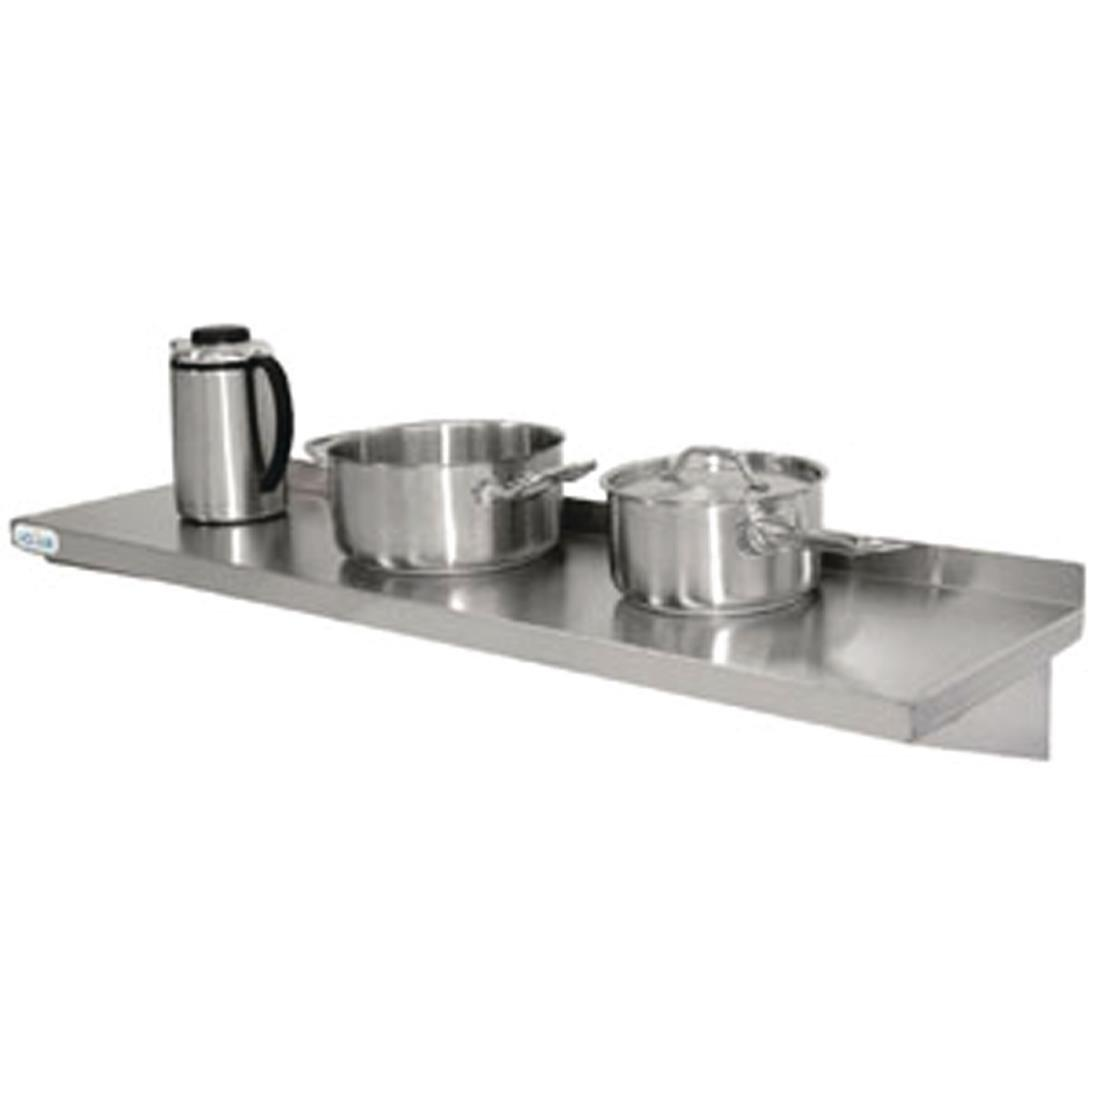 Y750 - Stainless Steel Kitchen Shelf